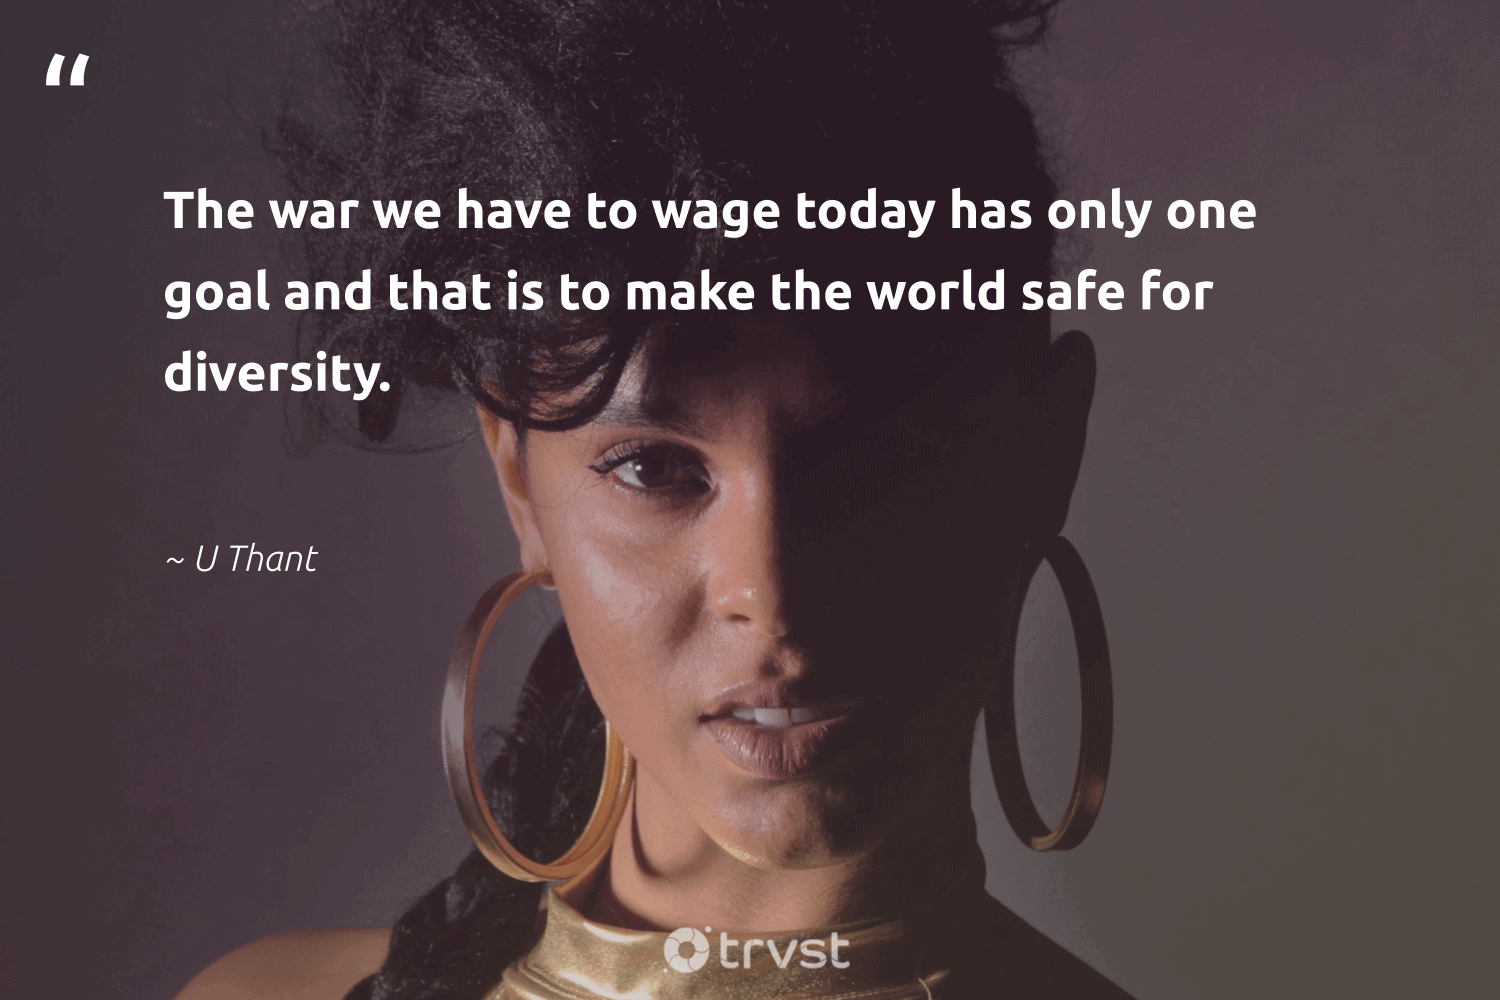 """""""The war we have to wage today has only one goal and that is to make the world safe for diversity.""""  - U Thant #trvst #quotes #diversity #discrimination #representationmatters #socialgood #weareallone #changetheworld #inclusion #socialchange #giveback #bethechange"""